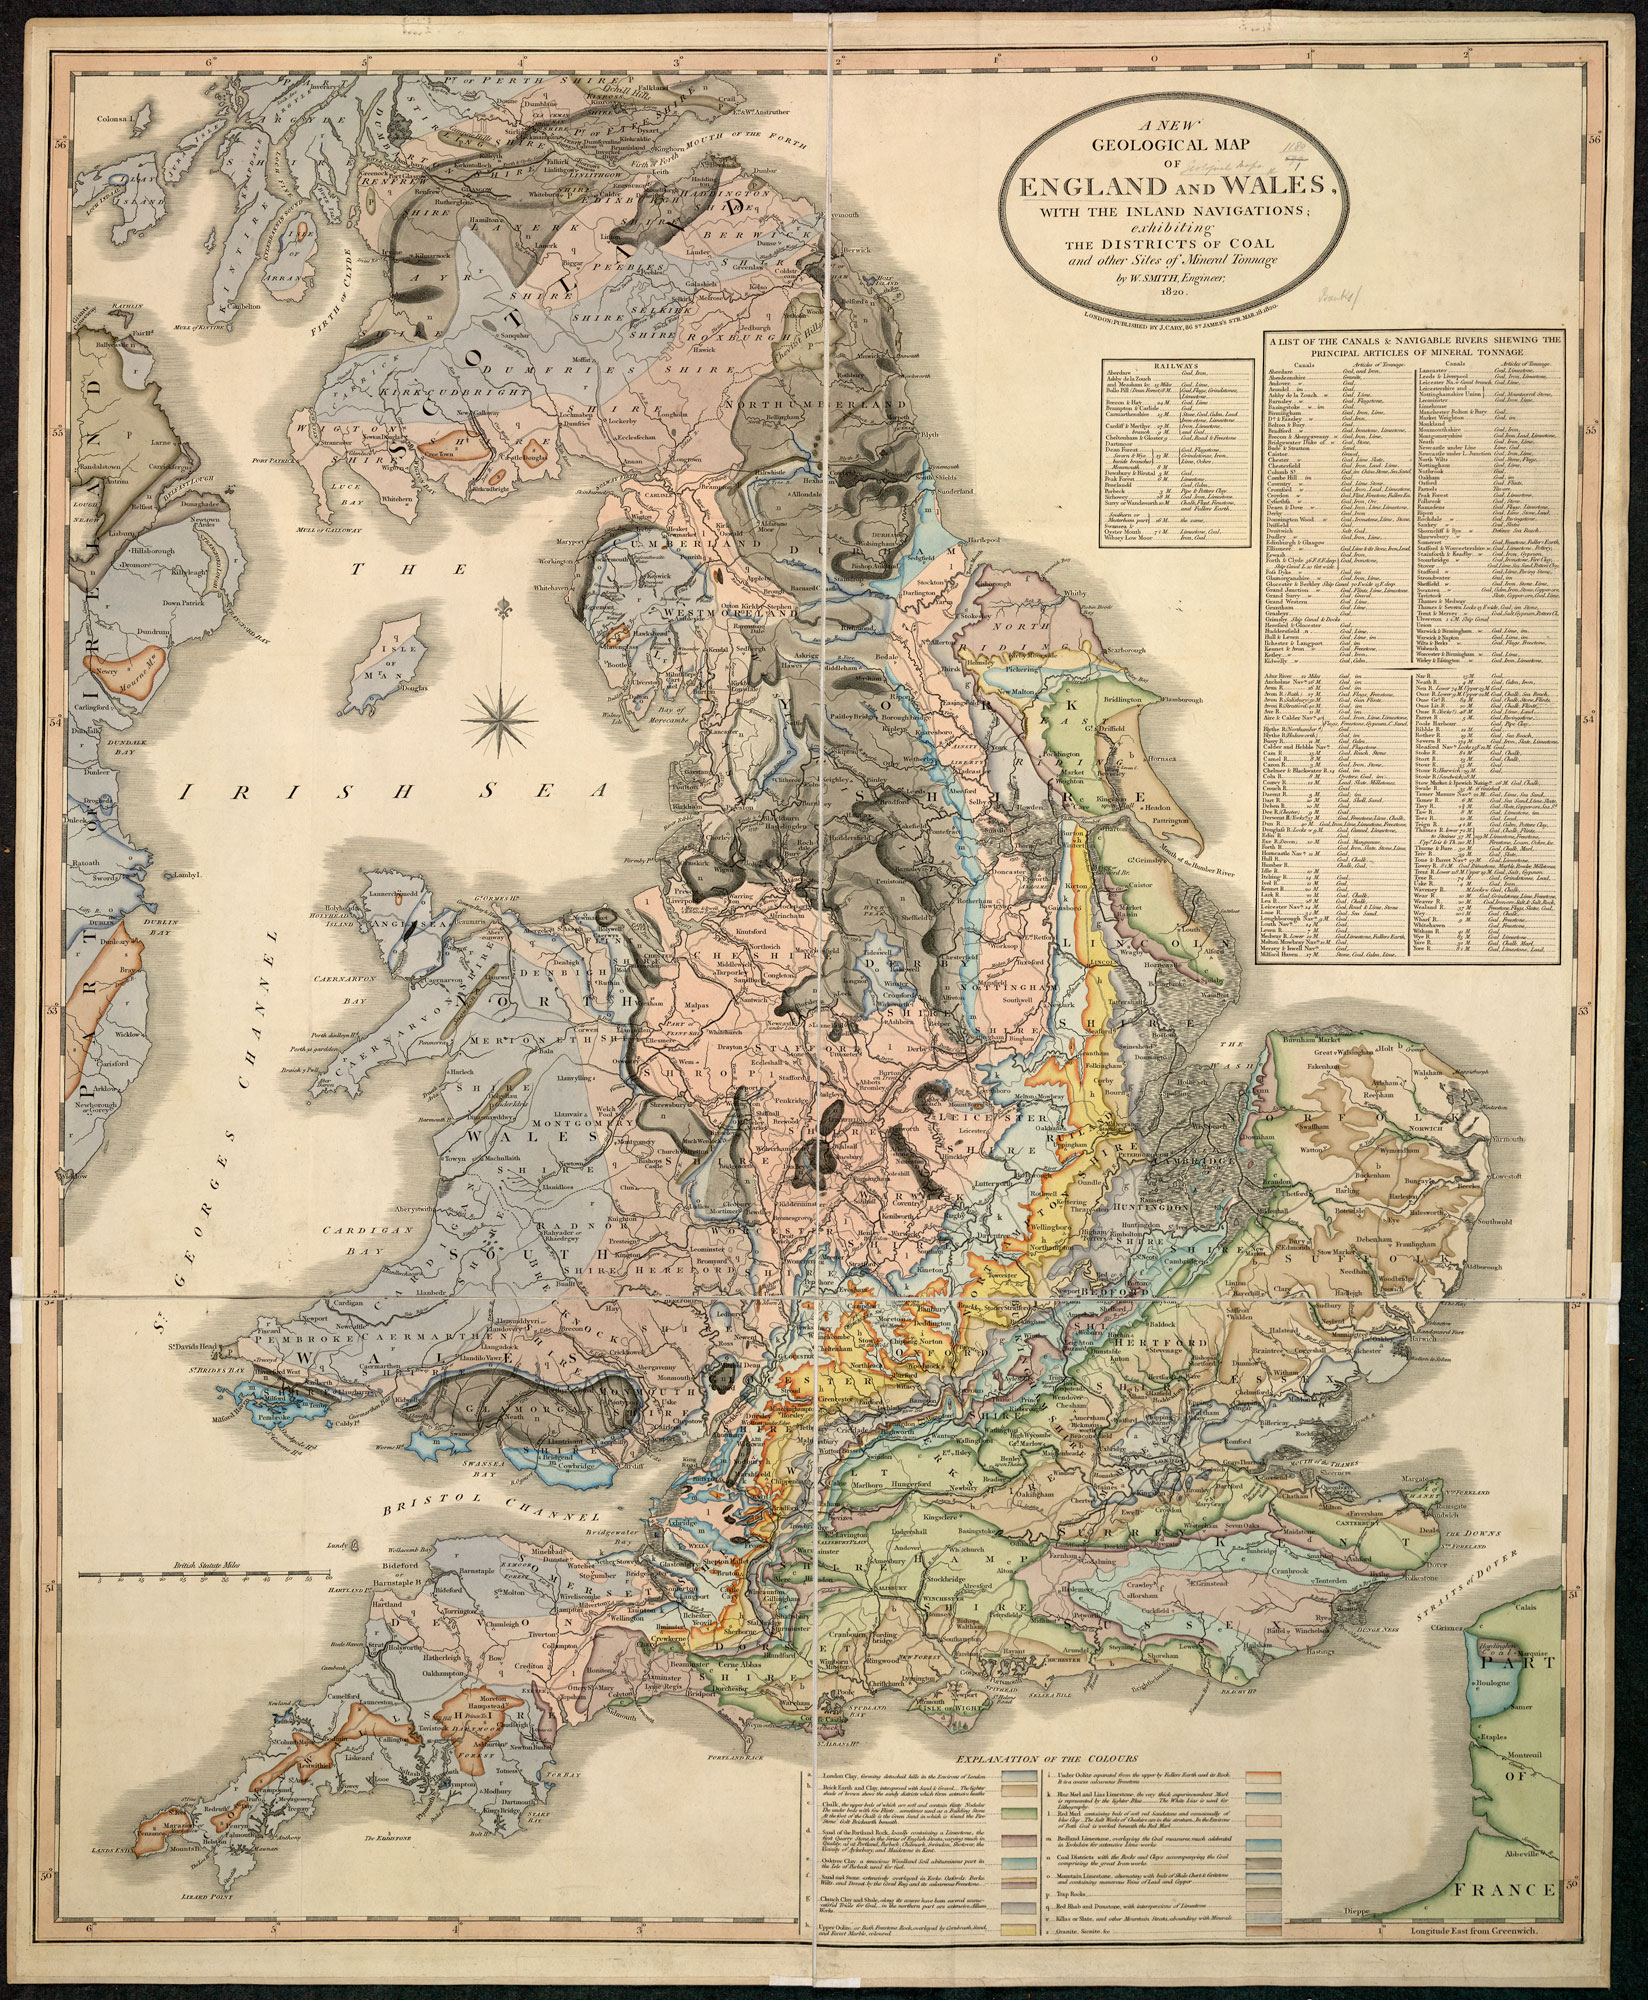 Geological map of England, showing coal-mining districts [page: 0]